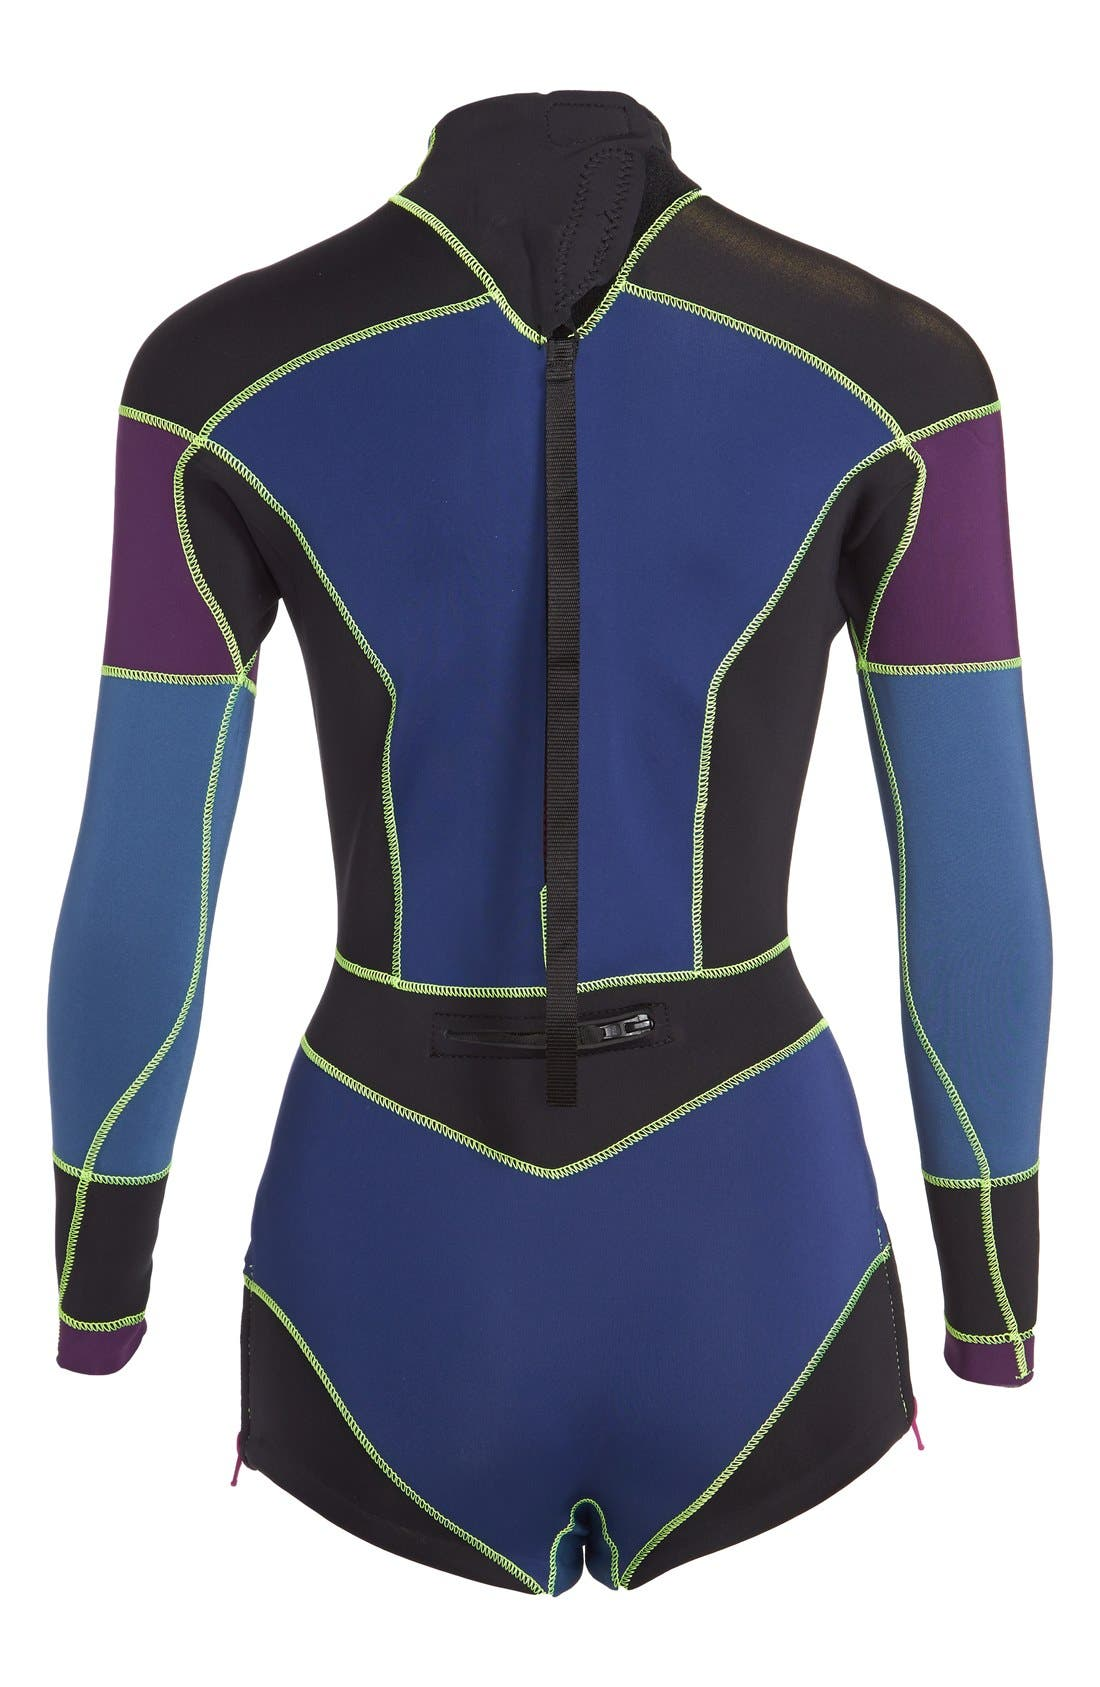 CYNTHIA ROWLEY,                             Colorblock Wetsuit,                             Alternate thumbnail 2, color,                             410